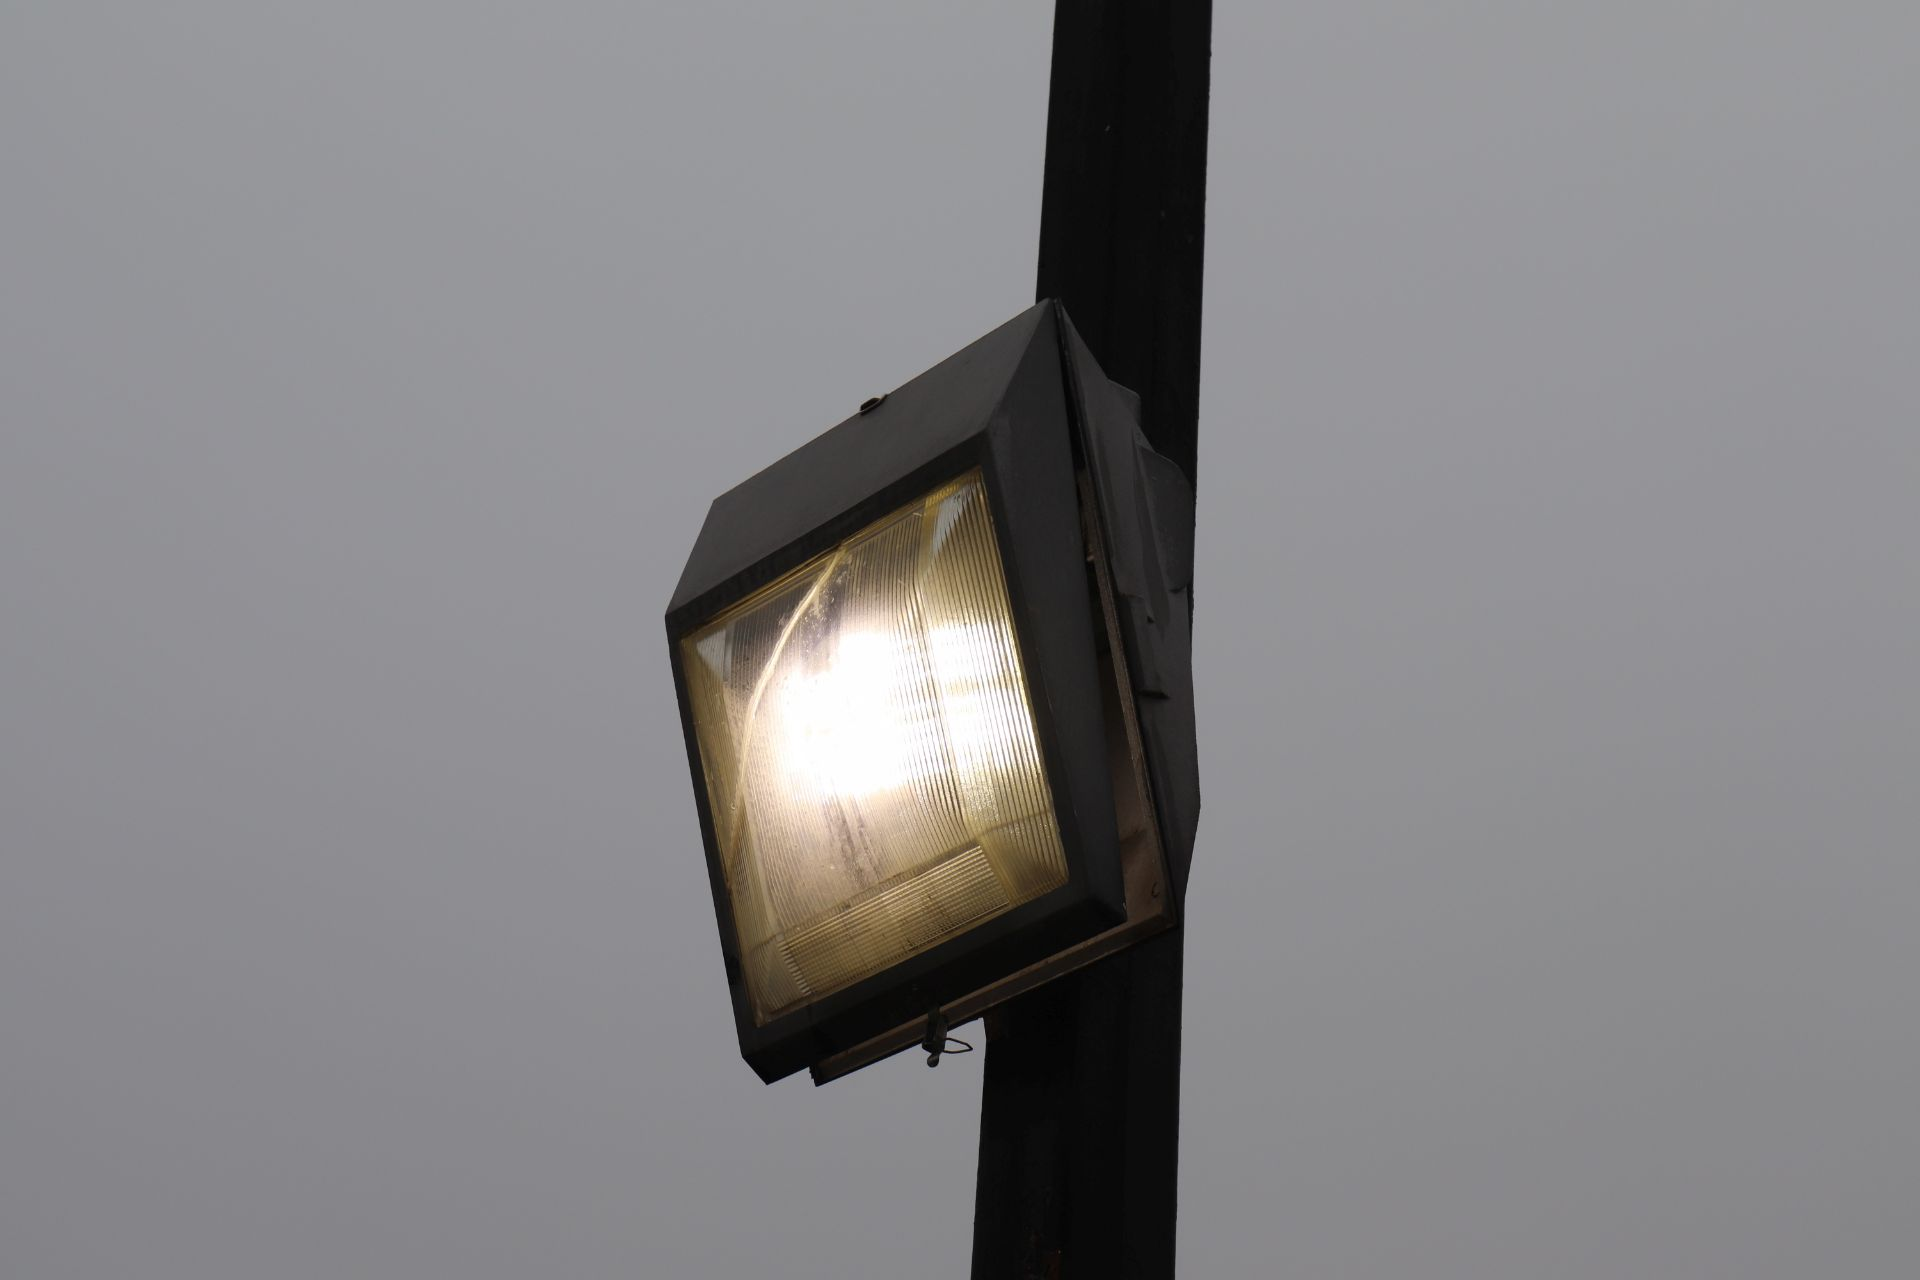 Square LED light *will be taken down before the auction